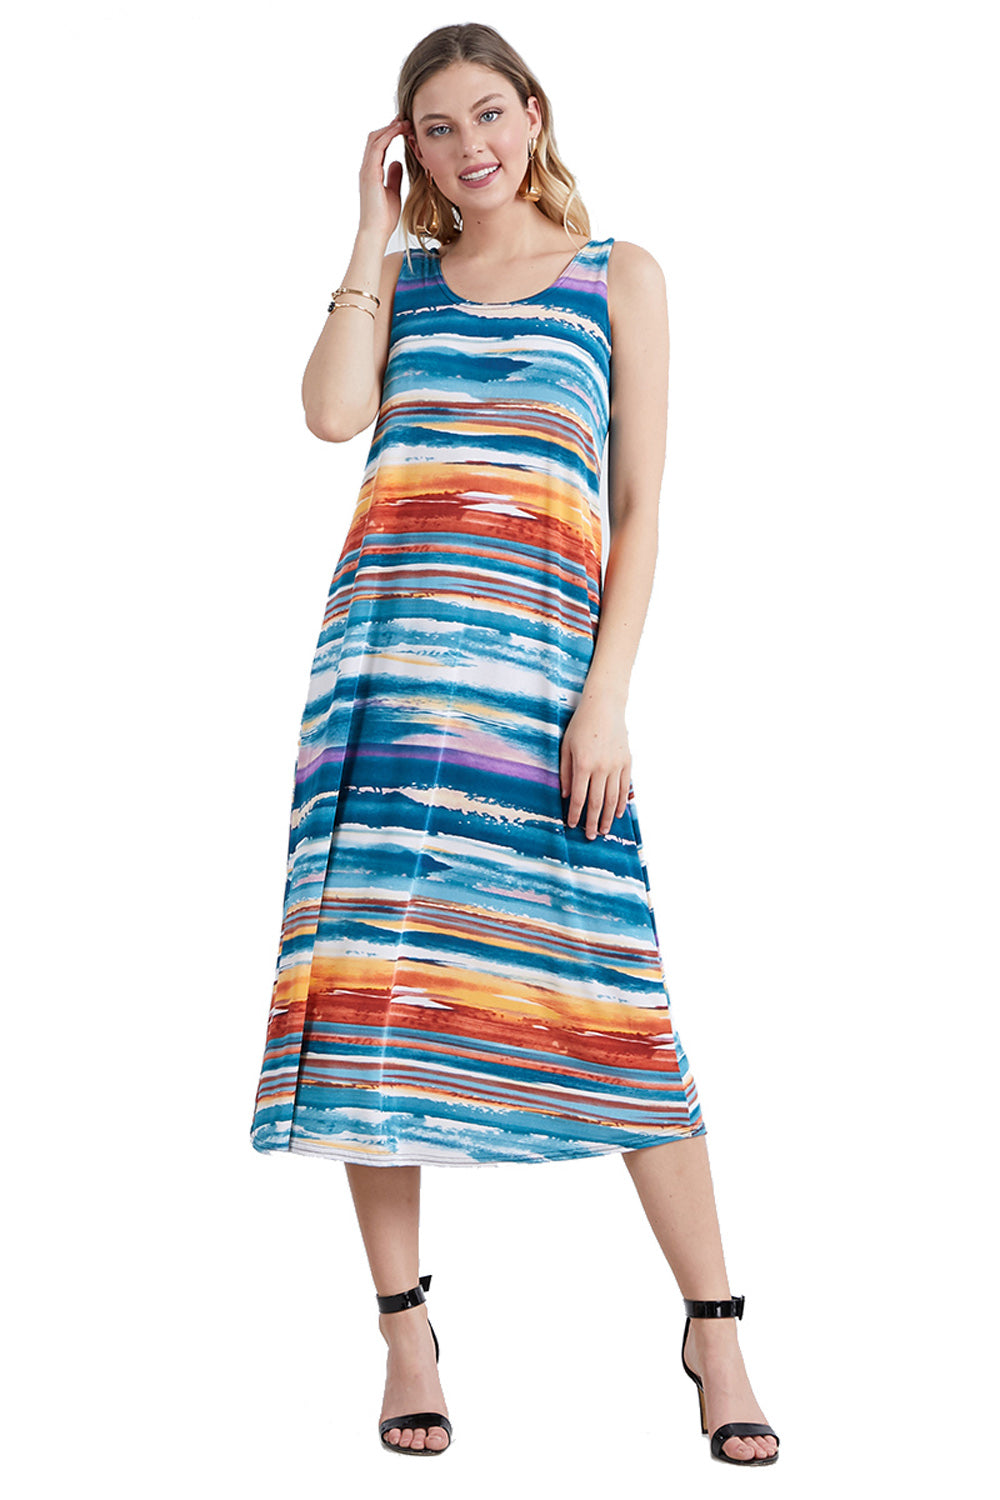 Jostar Women's Stretchy Long Tank Dress Print, 700BN-TP-W213 - Jostar Online